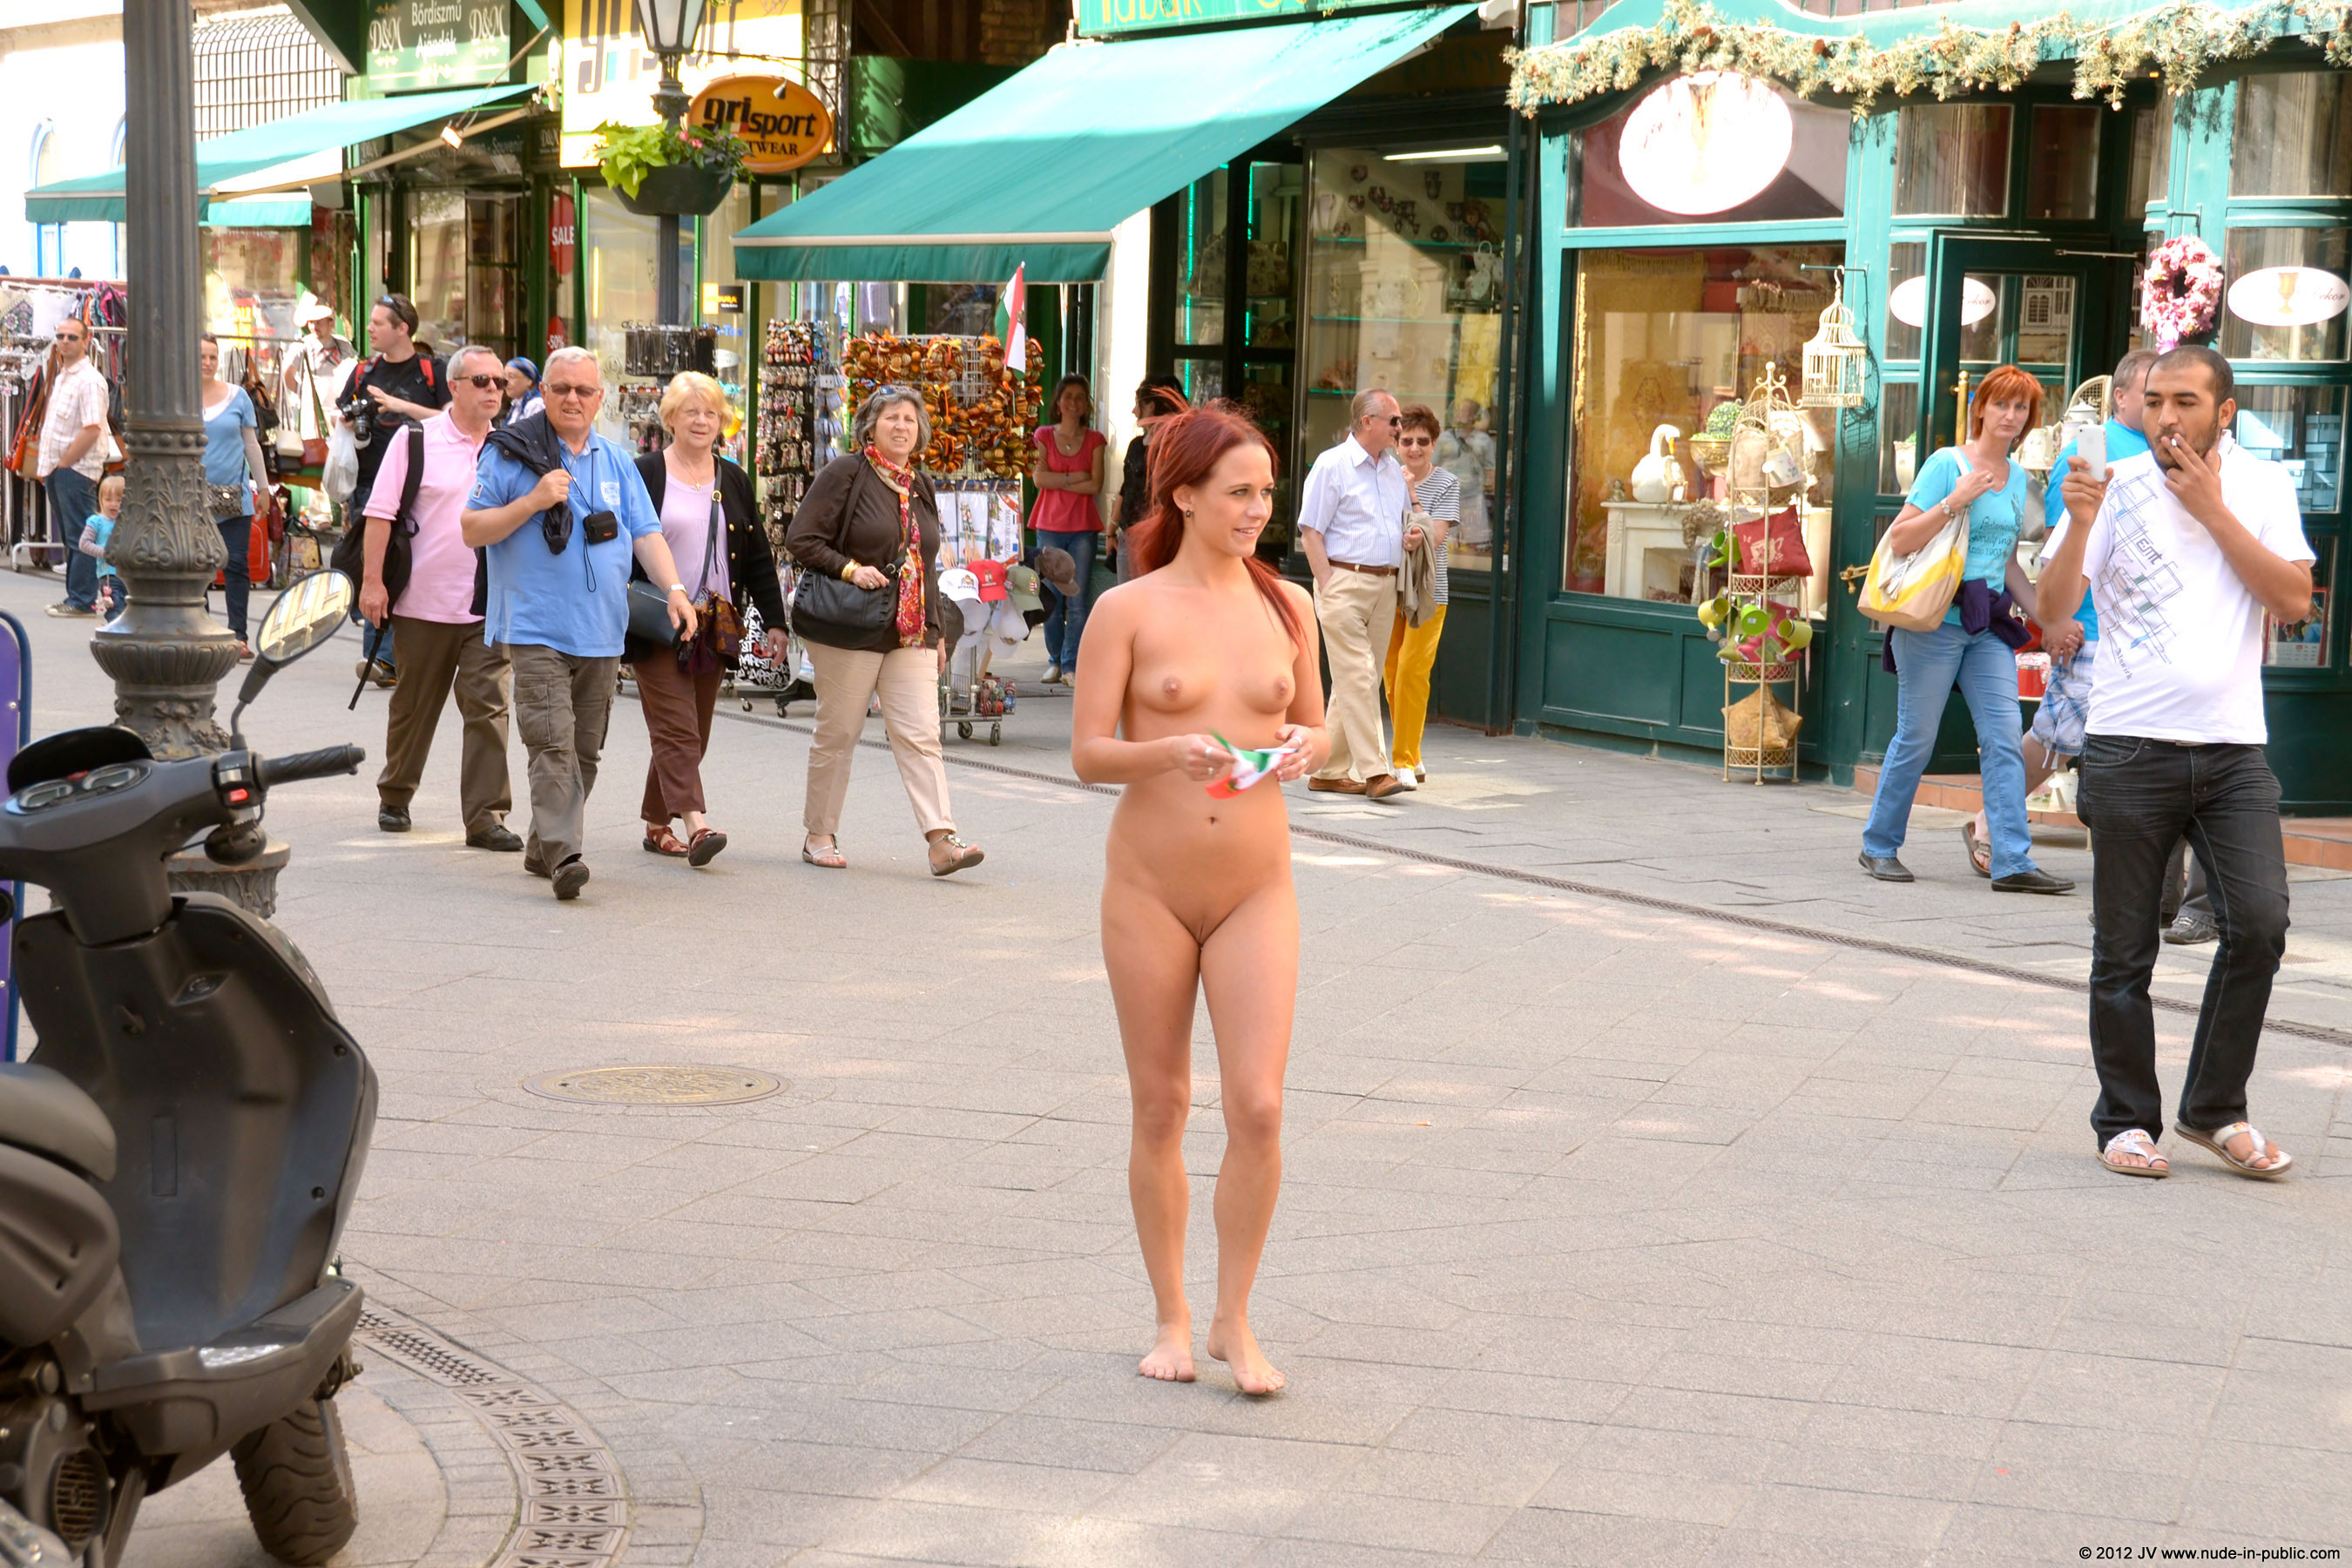 San Francisco court upholds public nudity ban | WORLD EXAMINER: https://examineropinion.wordpress.com/2013/01/30/san-francisco...